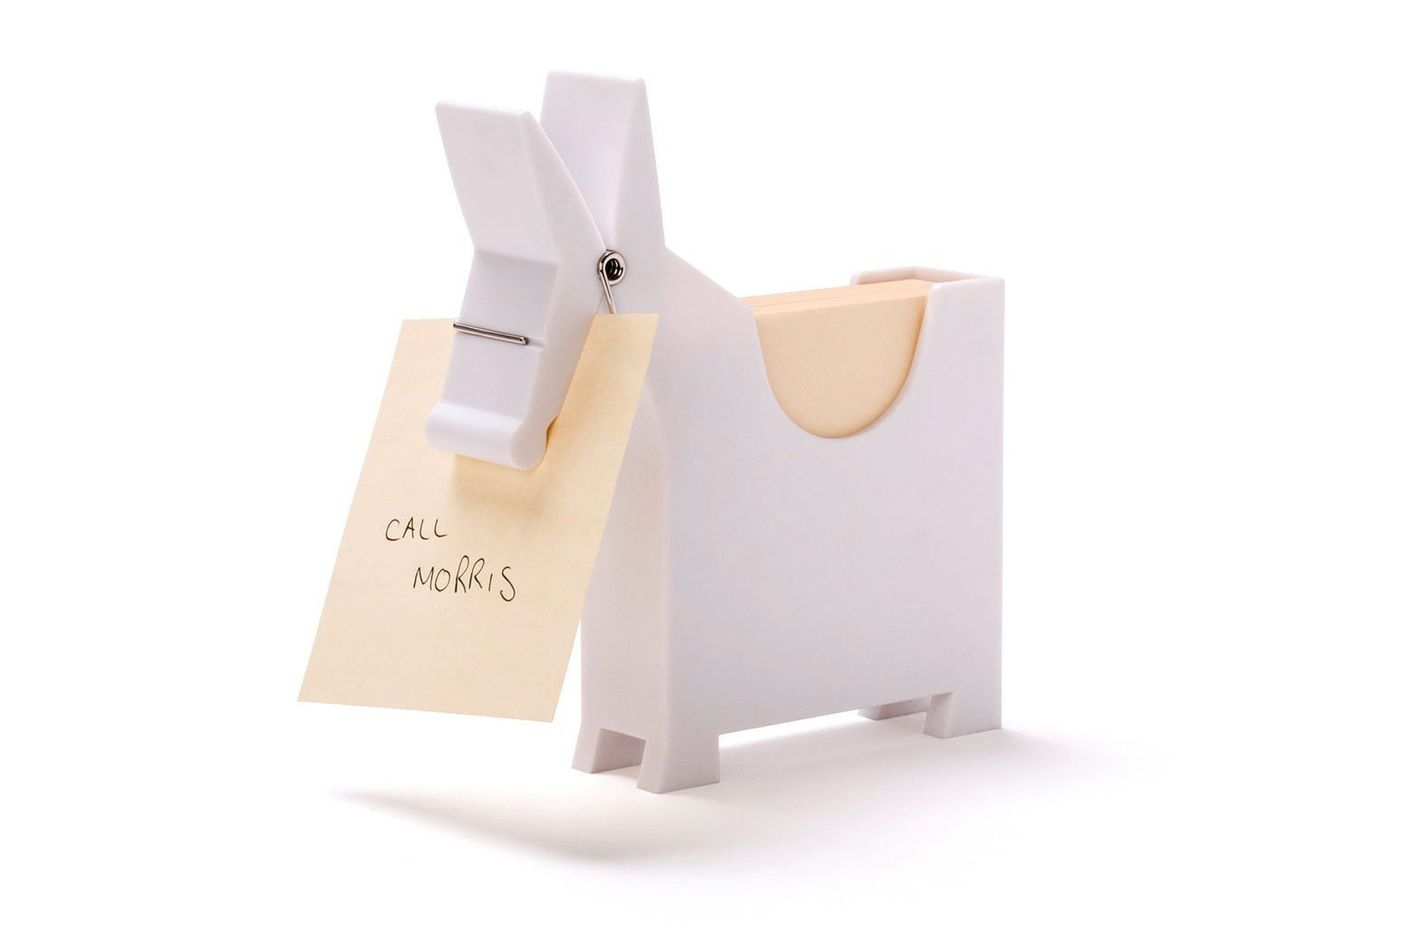 Morris the Donkey — Desktop Note Pad, Note Dispenser and Pen Holder